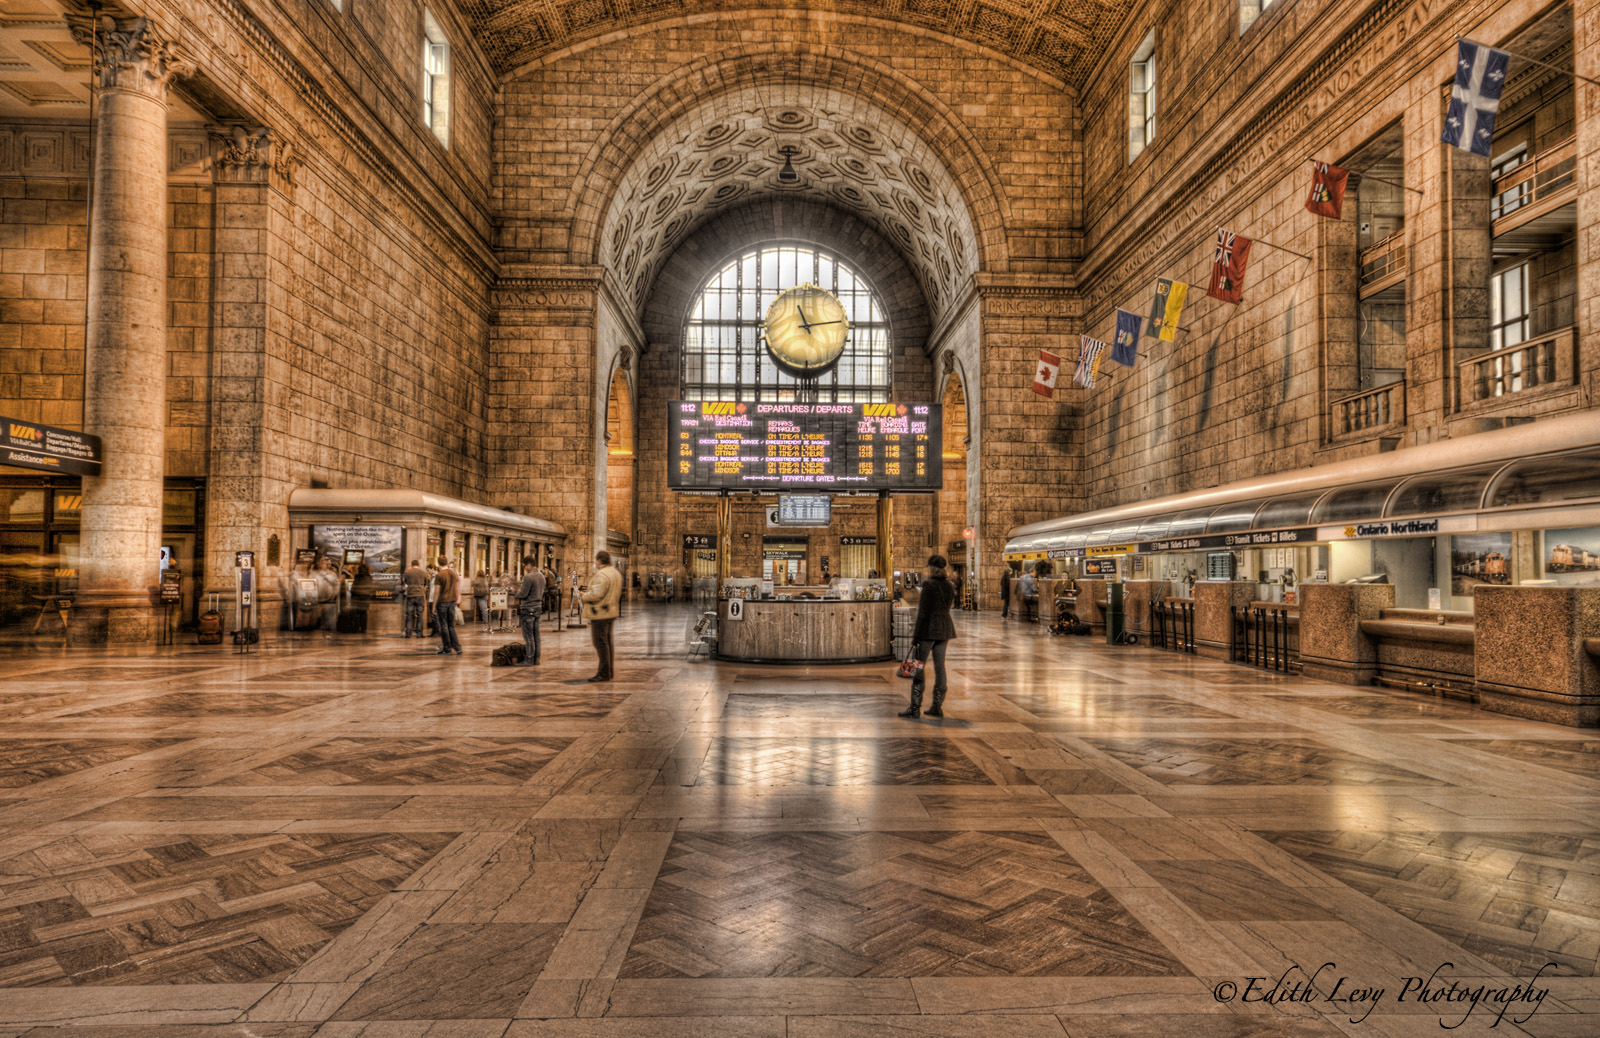 Union Station | Edith Levy Photography